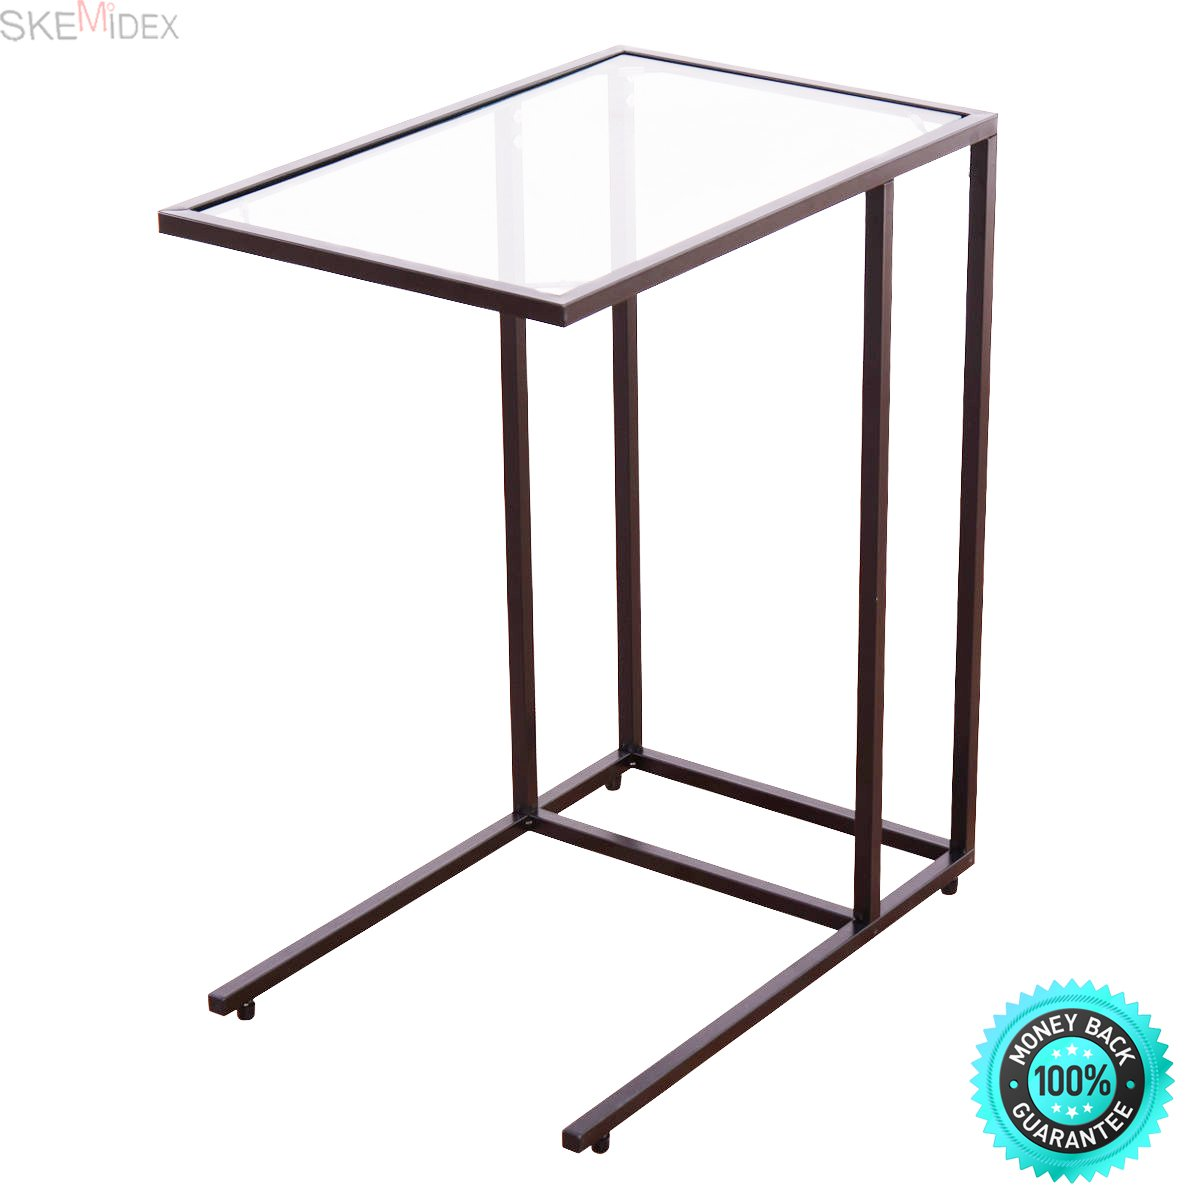 SKEMiDEX---Coffee Tray Side Sofa End Table Ottoman Couch Stand TV Lap Snack W/Glass Top New. Can be used as end tables, lamp tables, decorative displays tables, or simply accent pieces